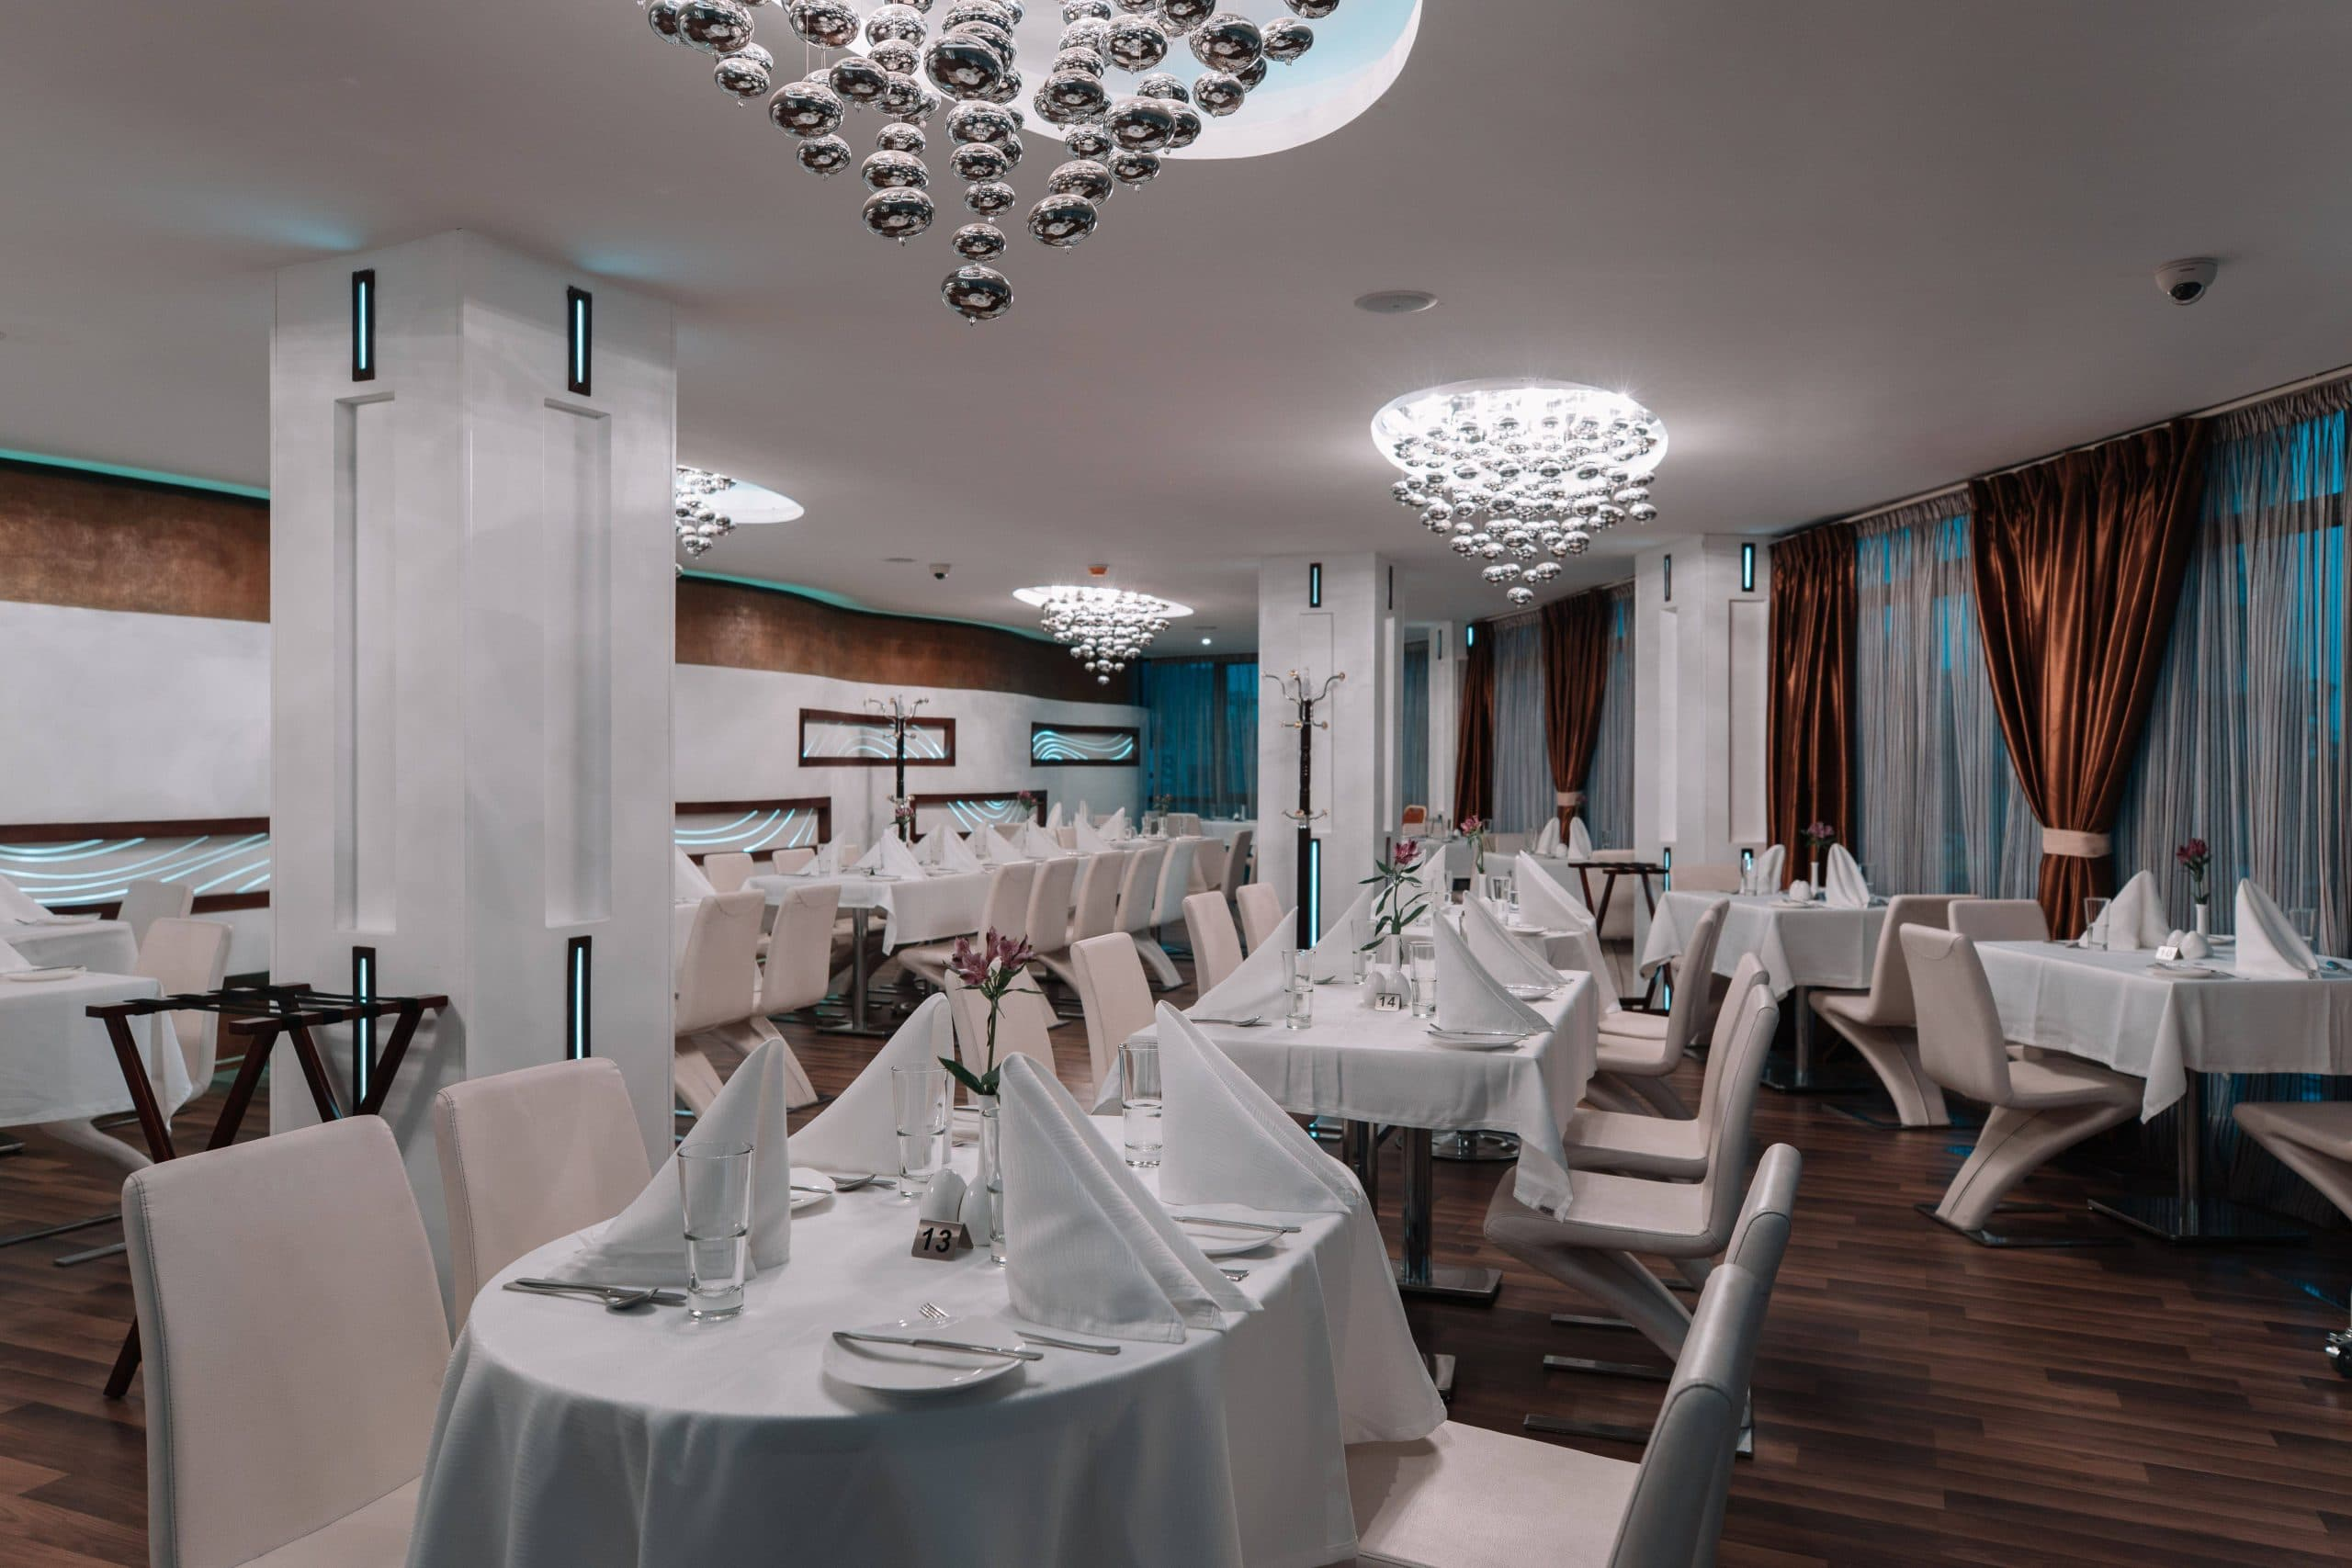 Our Luxury Restaurant